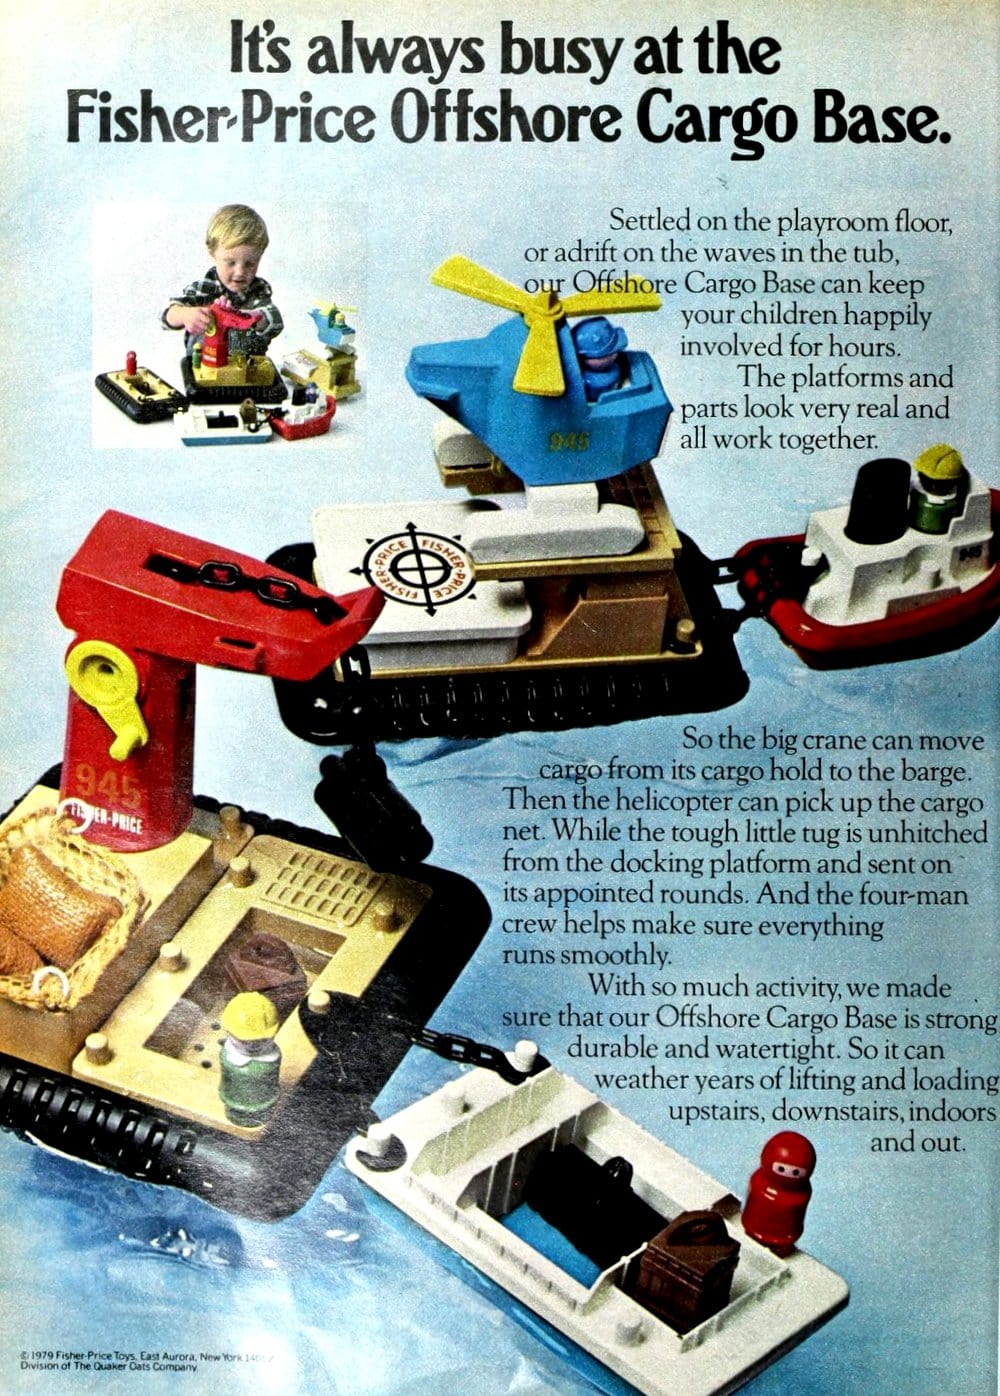 Fisher Price Offshore Cargo Base play set (1979)